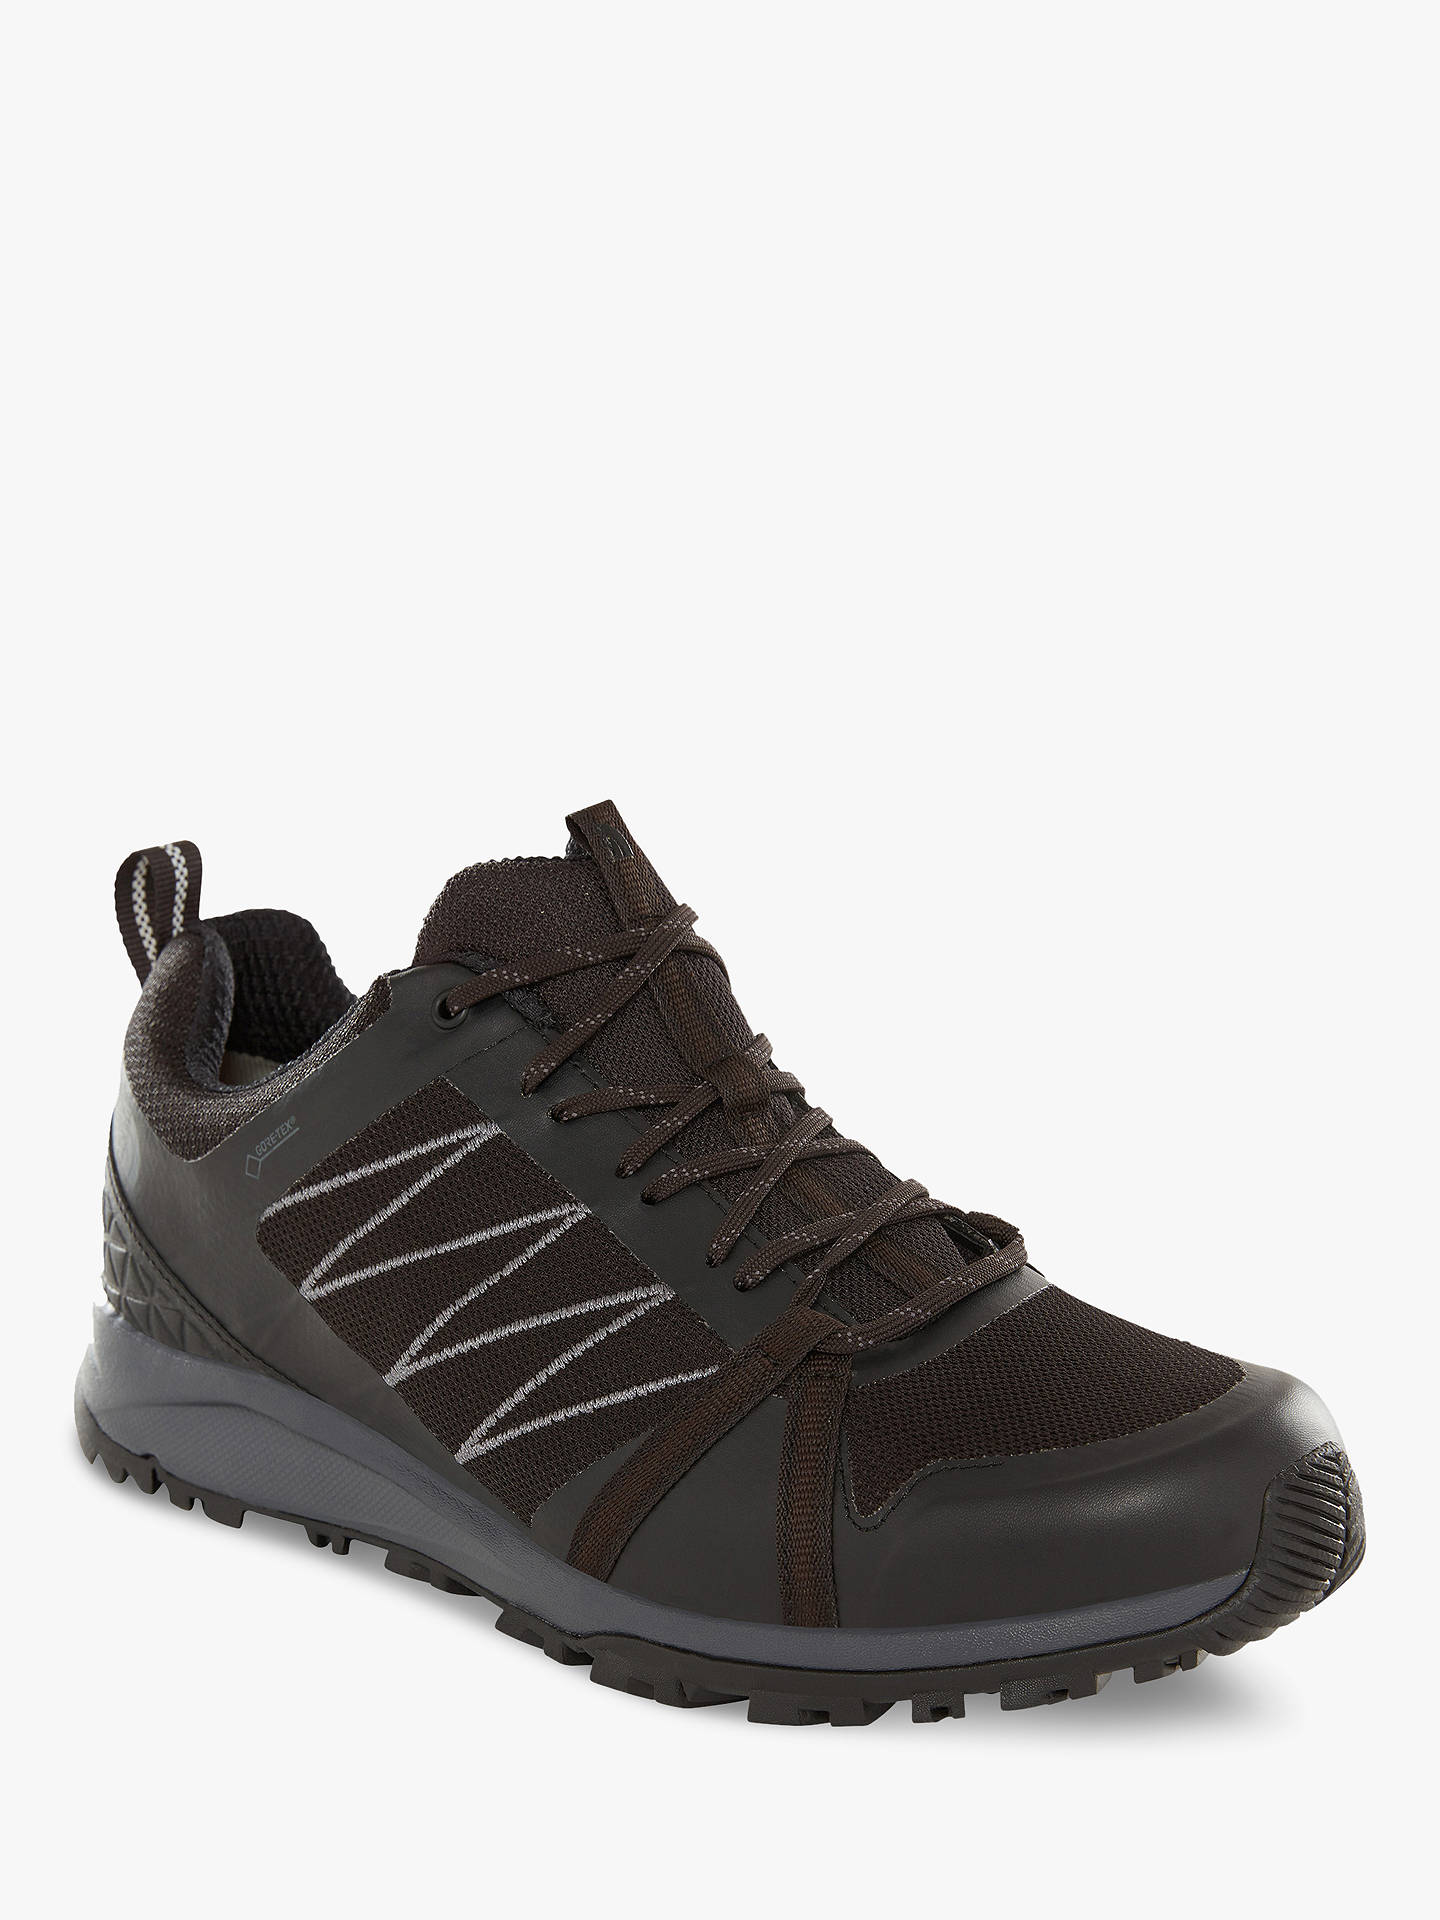 1e66cb156 The North Face Litewave Fastpack II GTX Men's Hiking Shoes, Black/Ebony Grey